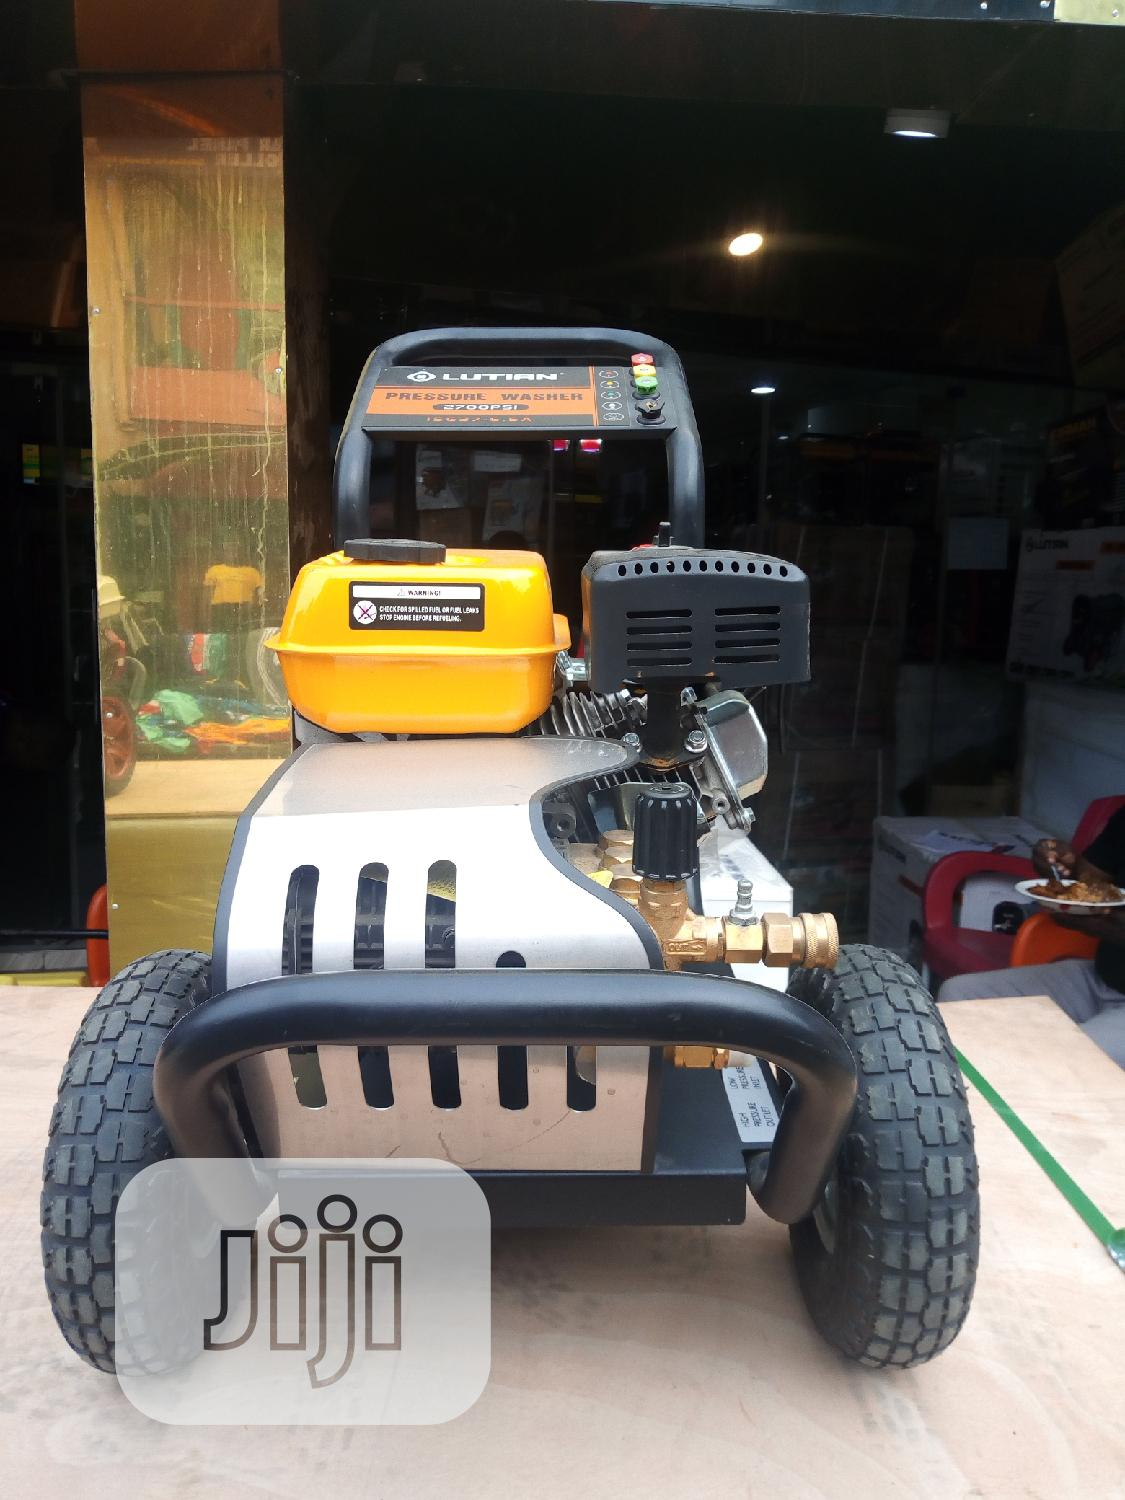 Higher Quality 6.5hp LUTIAN Pressure Washer | Garden for sale in Ojo, Lagos State, Nigeria